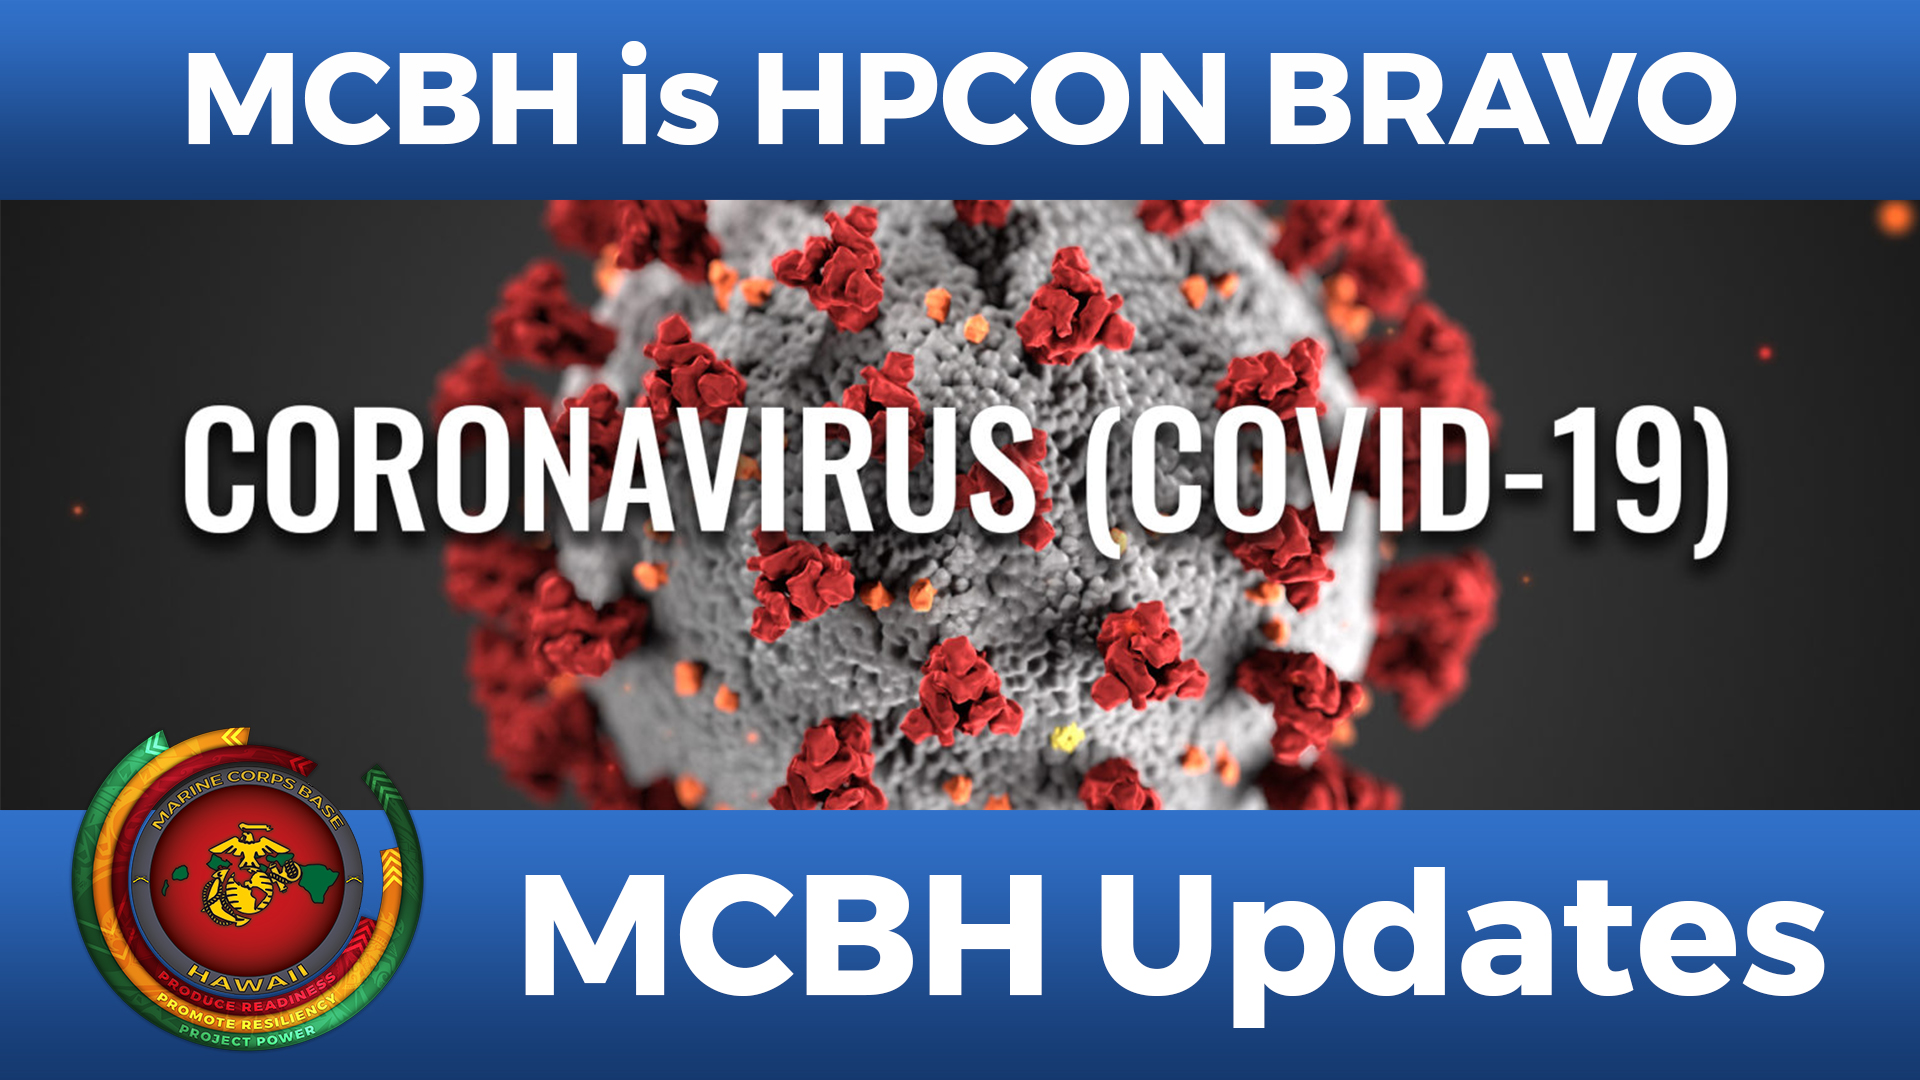 MCBH is currently HPCON BRAVO